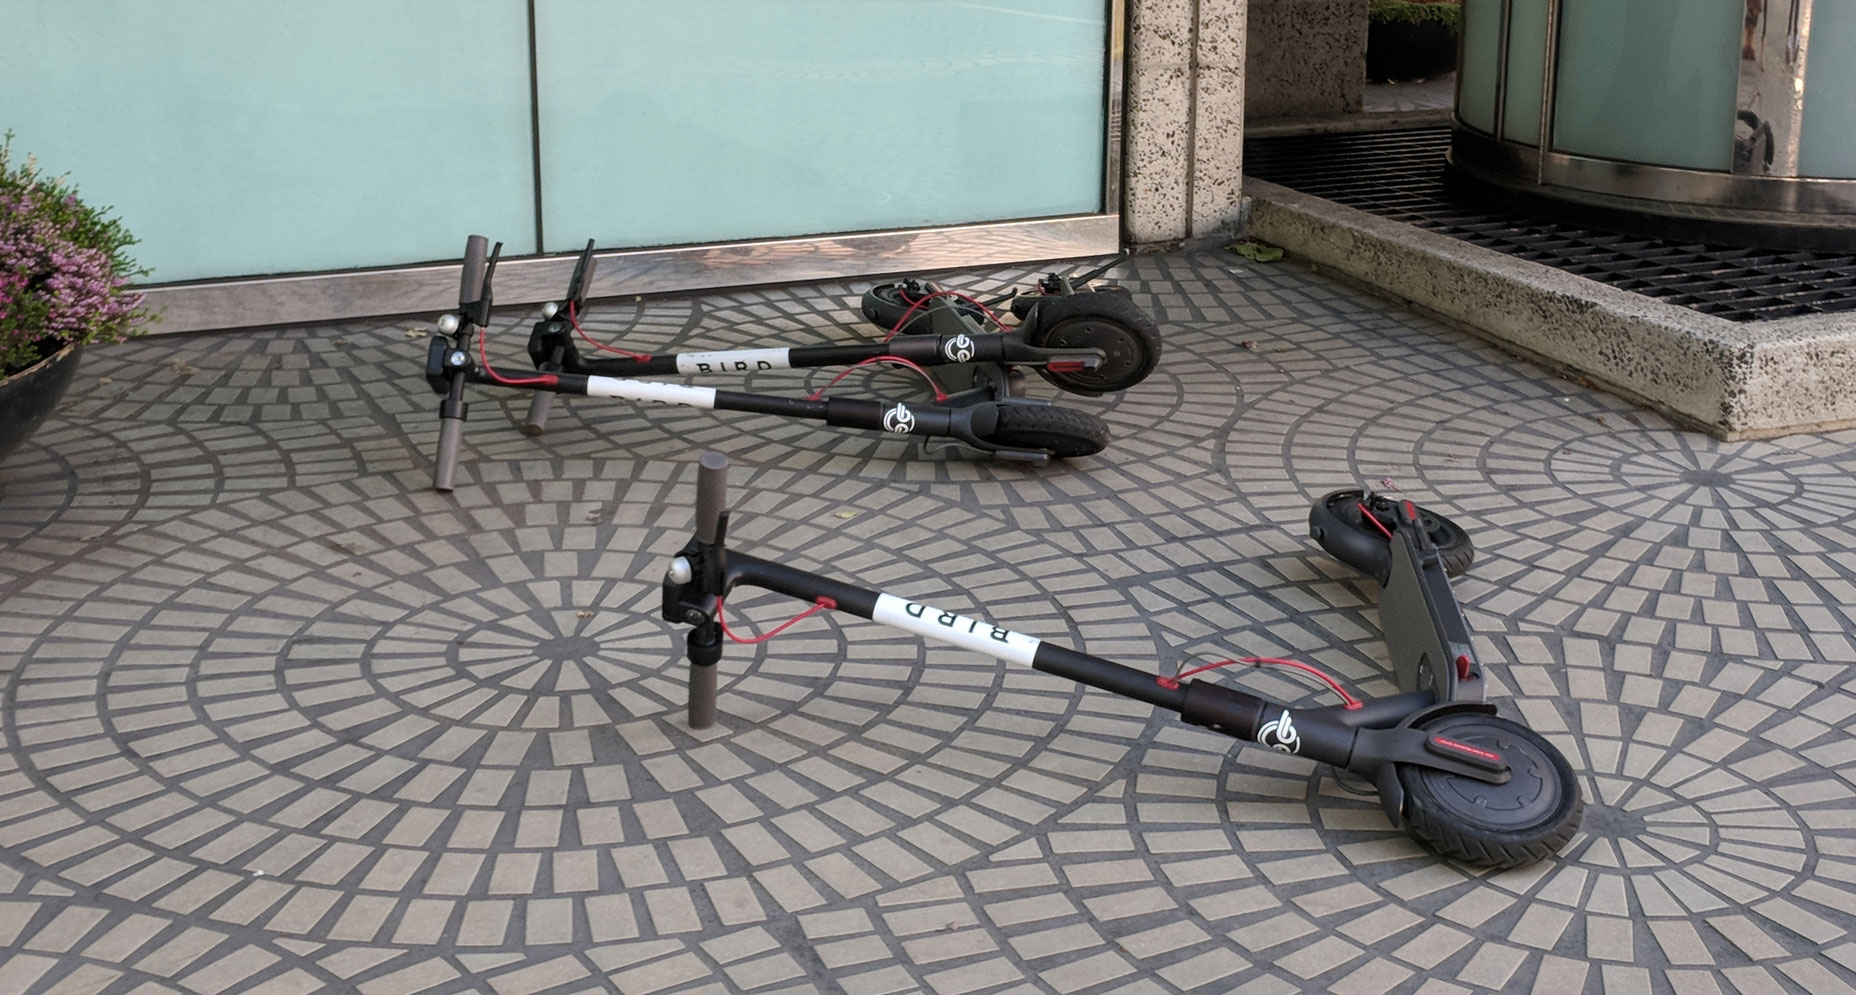 three scooters lying in the sidewalk